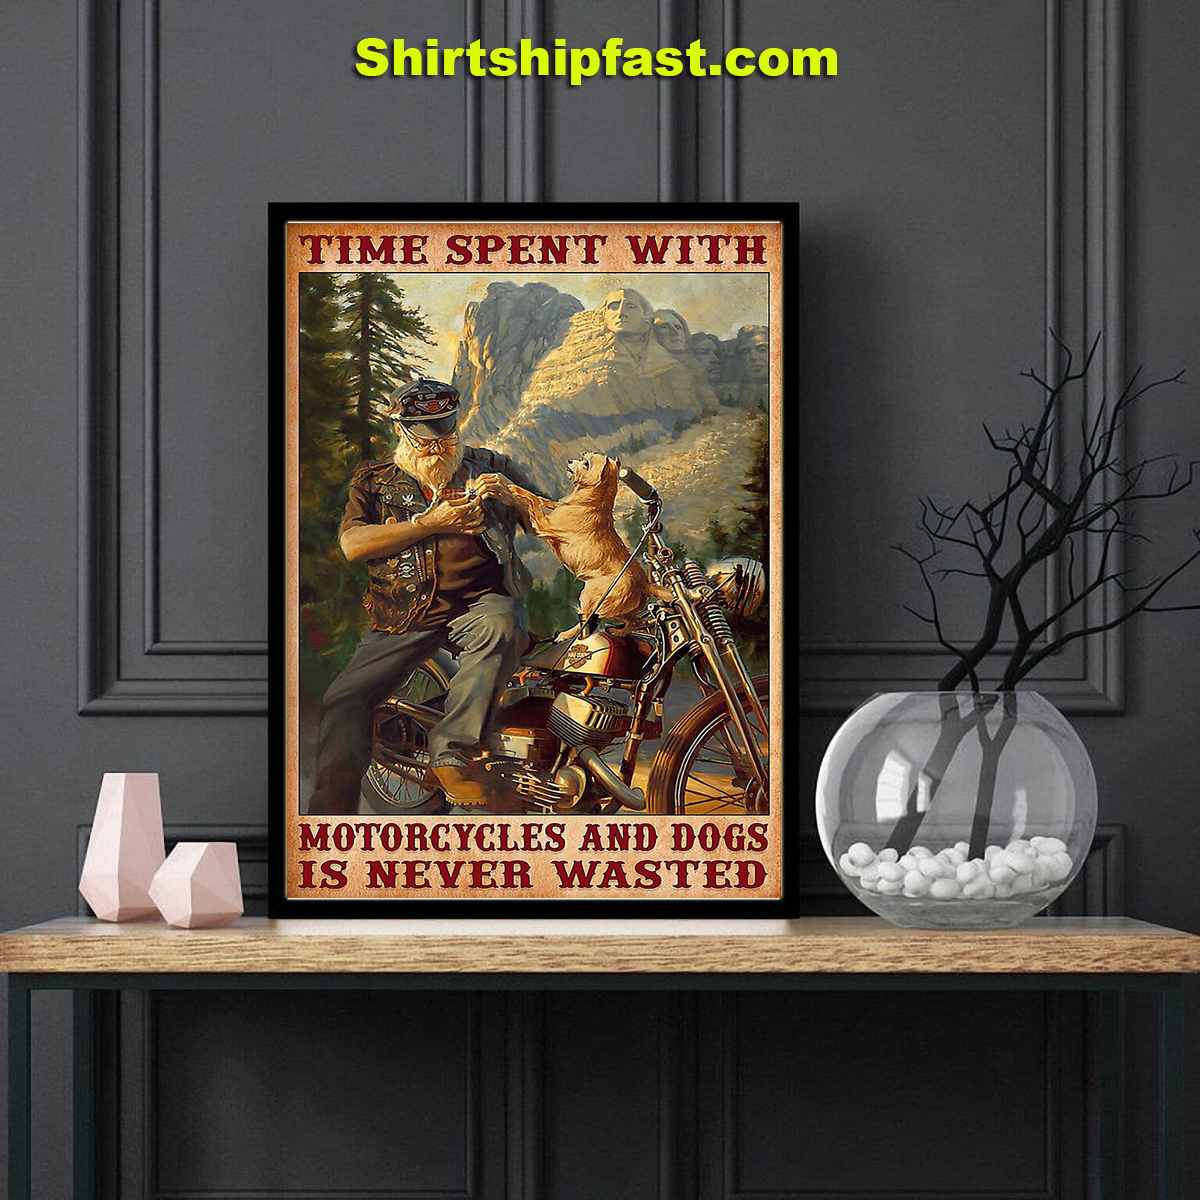 Time spent with motorcycles and dogs is never wasted poster - Picture 1